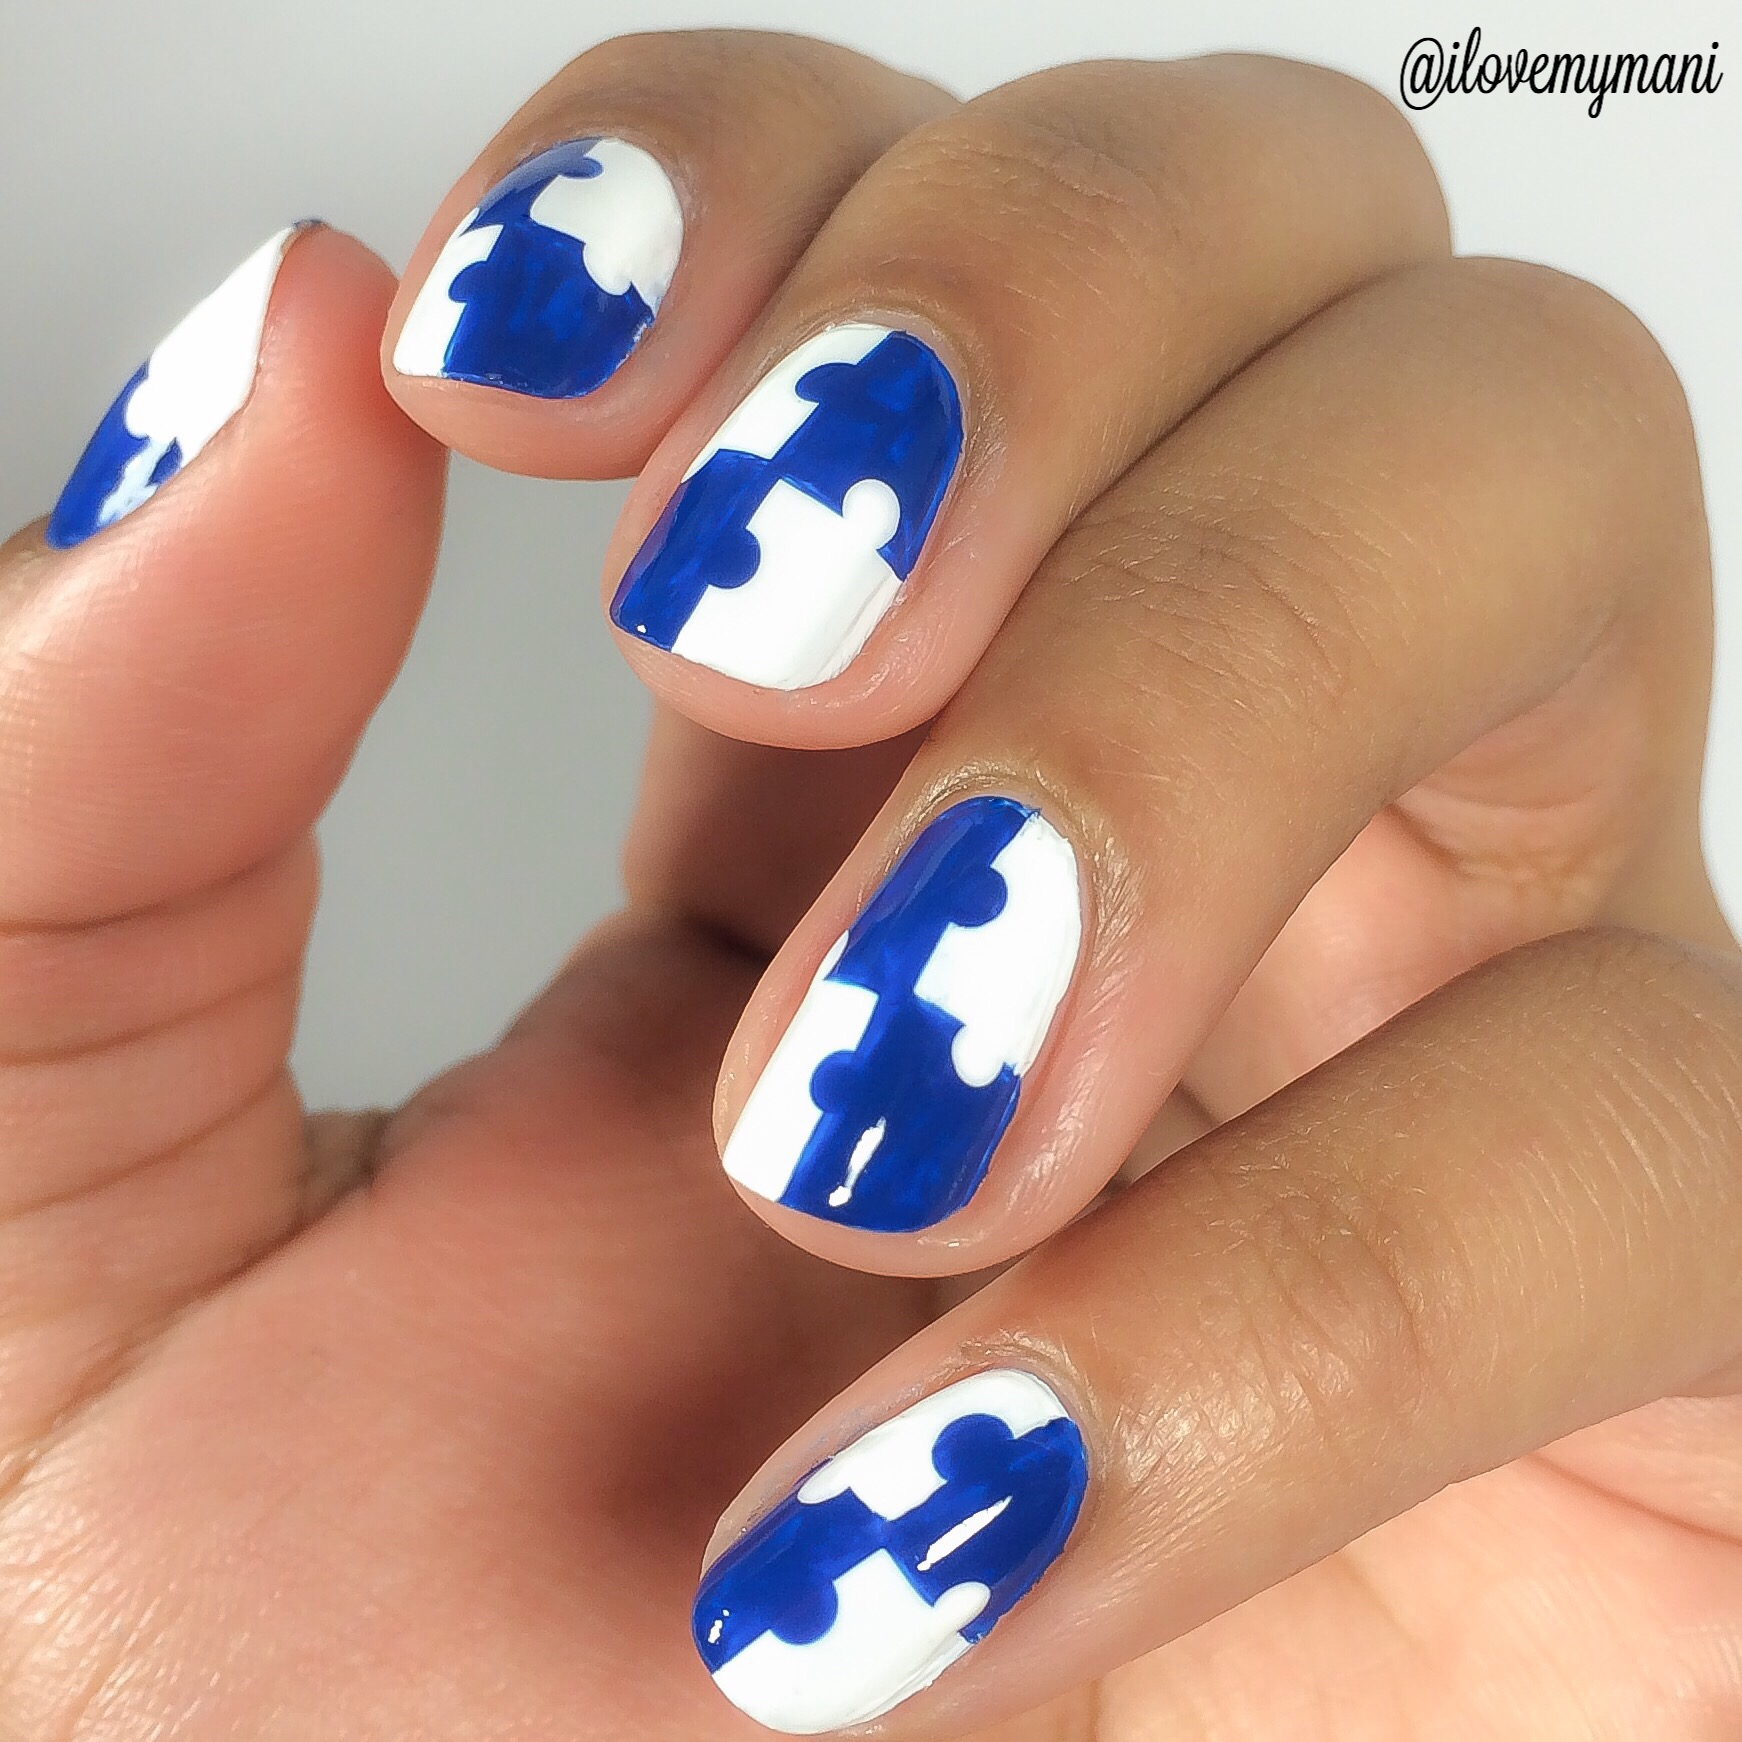 Autism awareness nail art pictorial i love my mani autism awareness nail art pictorial prinsesfo Images